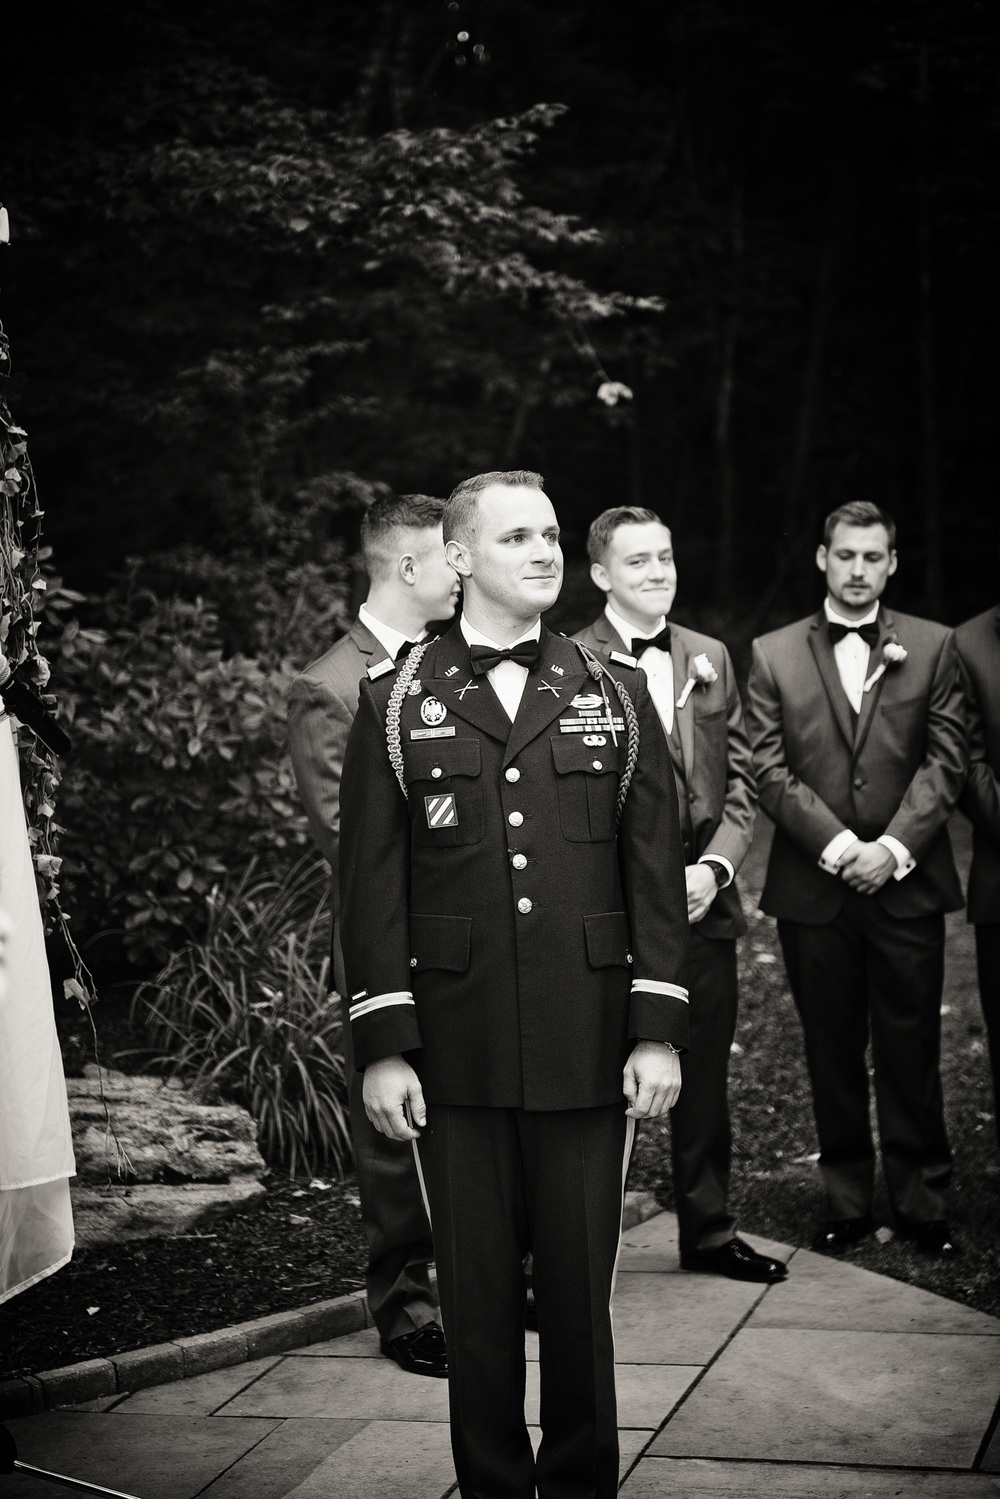 groom 1LT First Lieutenant ceremony formal alter portrait waiting THPHOTO